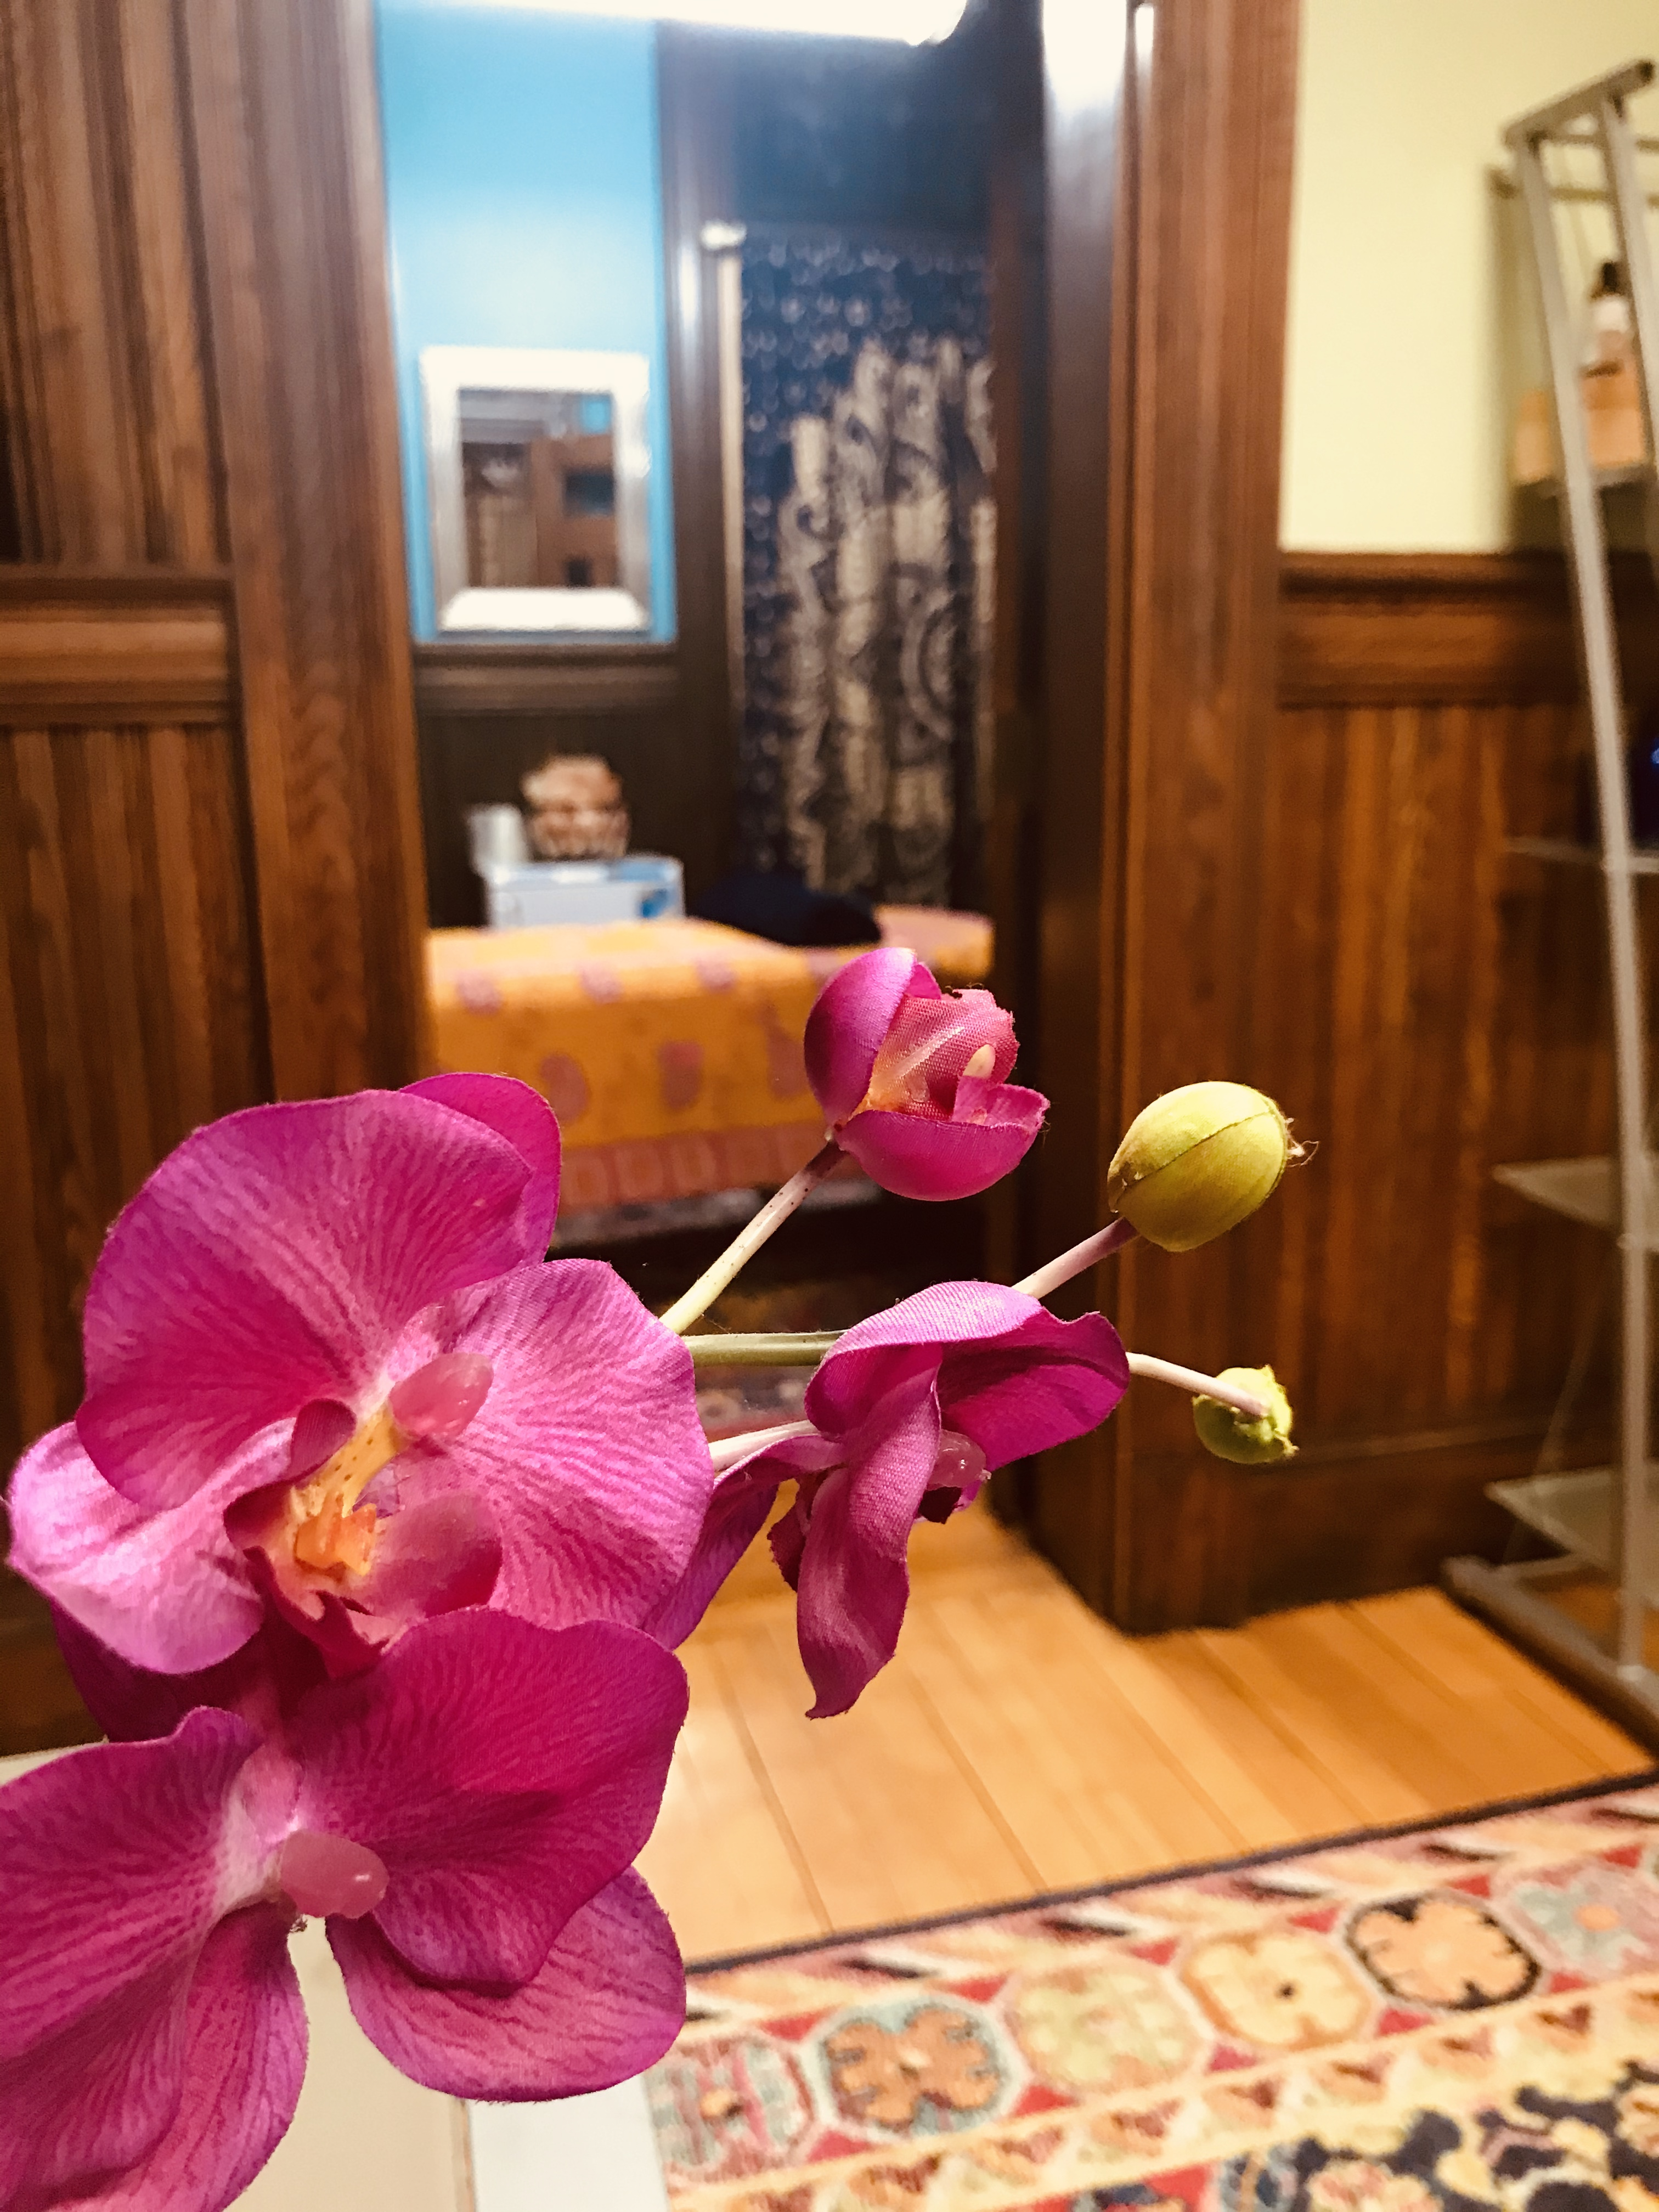 Orchid, massage table, office, shabby chic